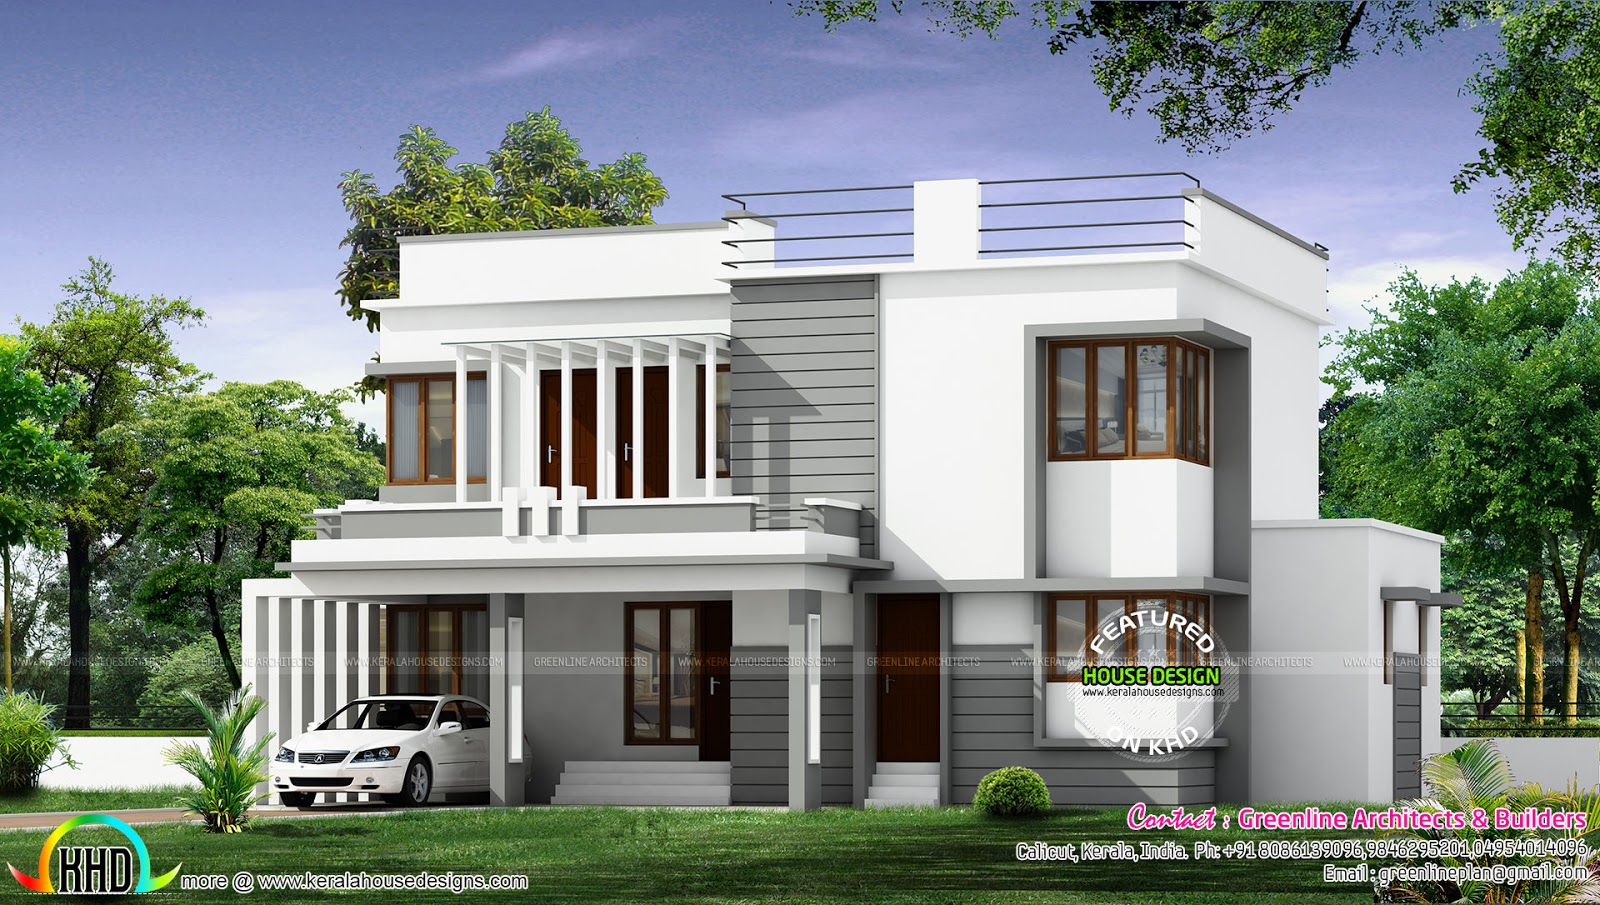 New modern house architecture kerala home design and for New home plans